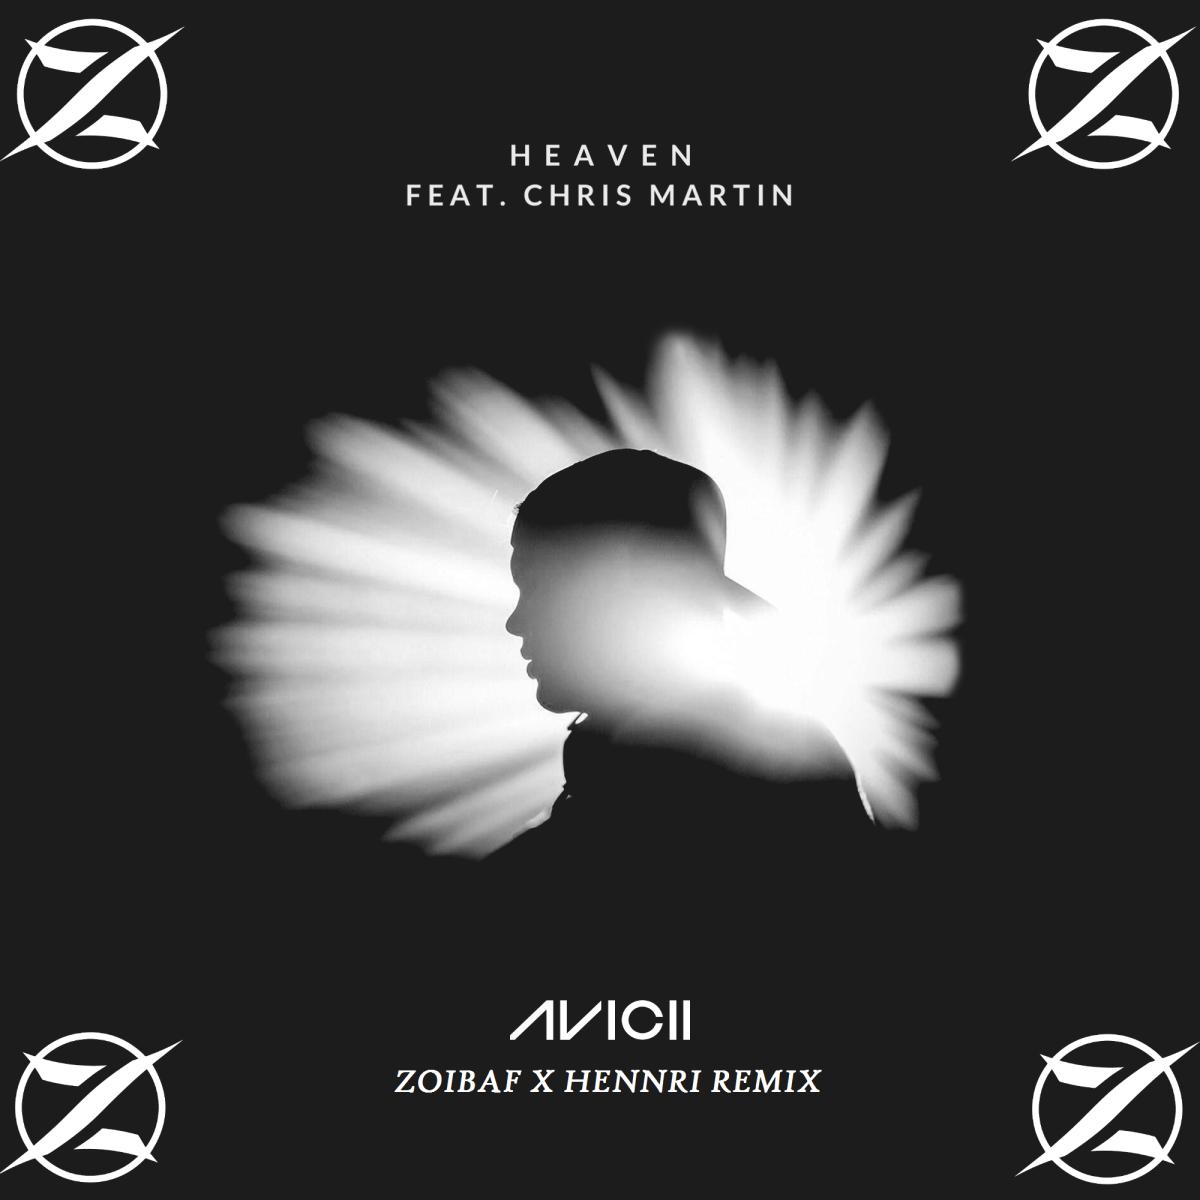 Avicii- Heaven (feat Chris Martin) -- Cover by Zoibaf & Hennri (REMIX)